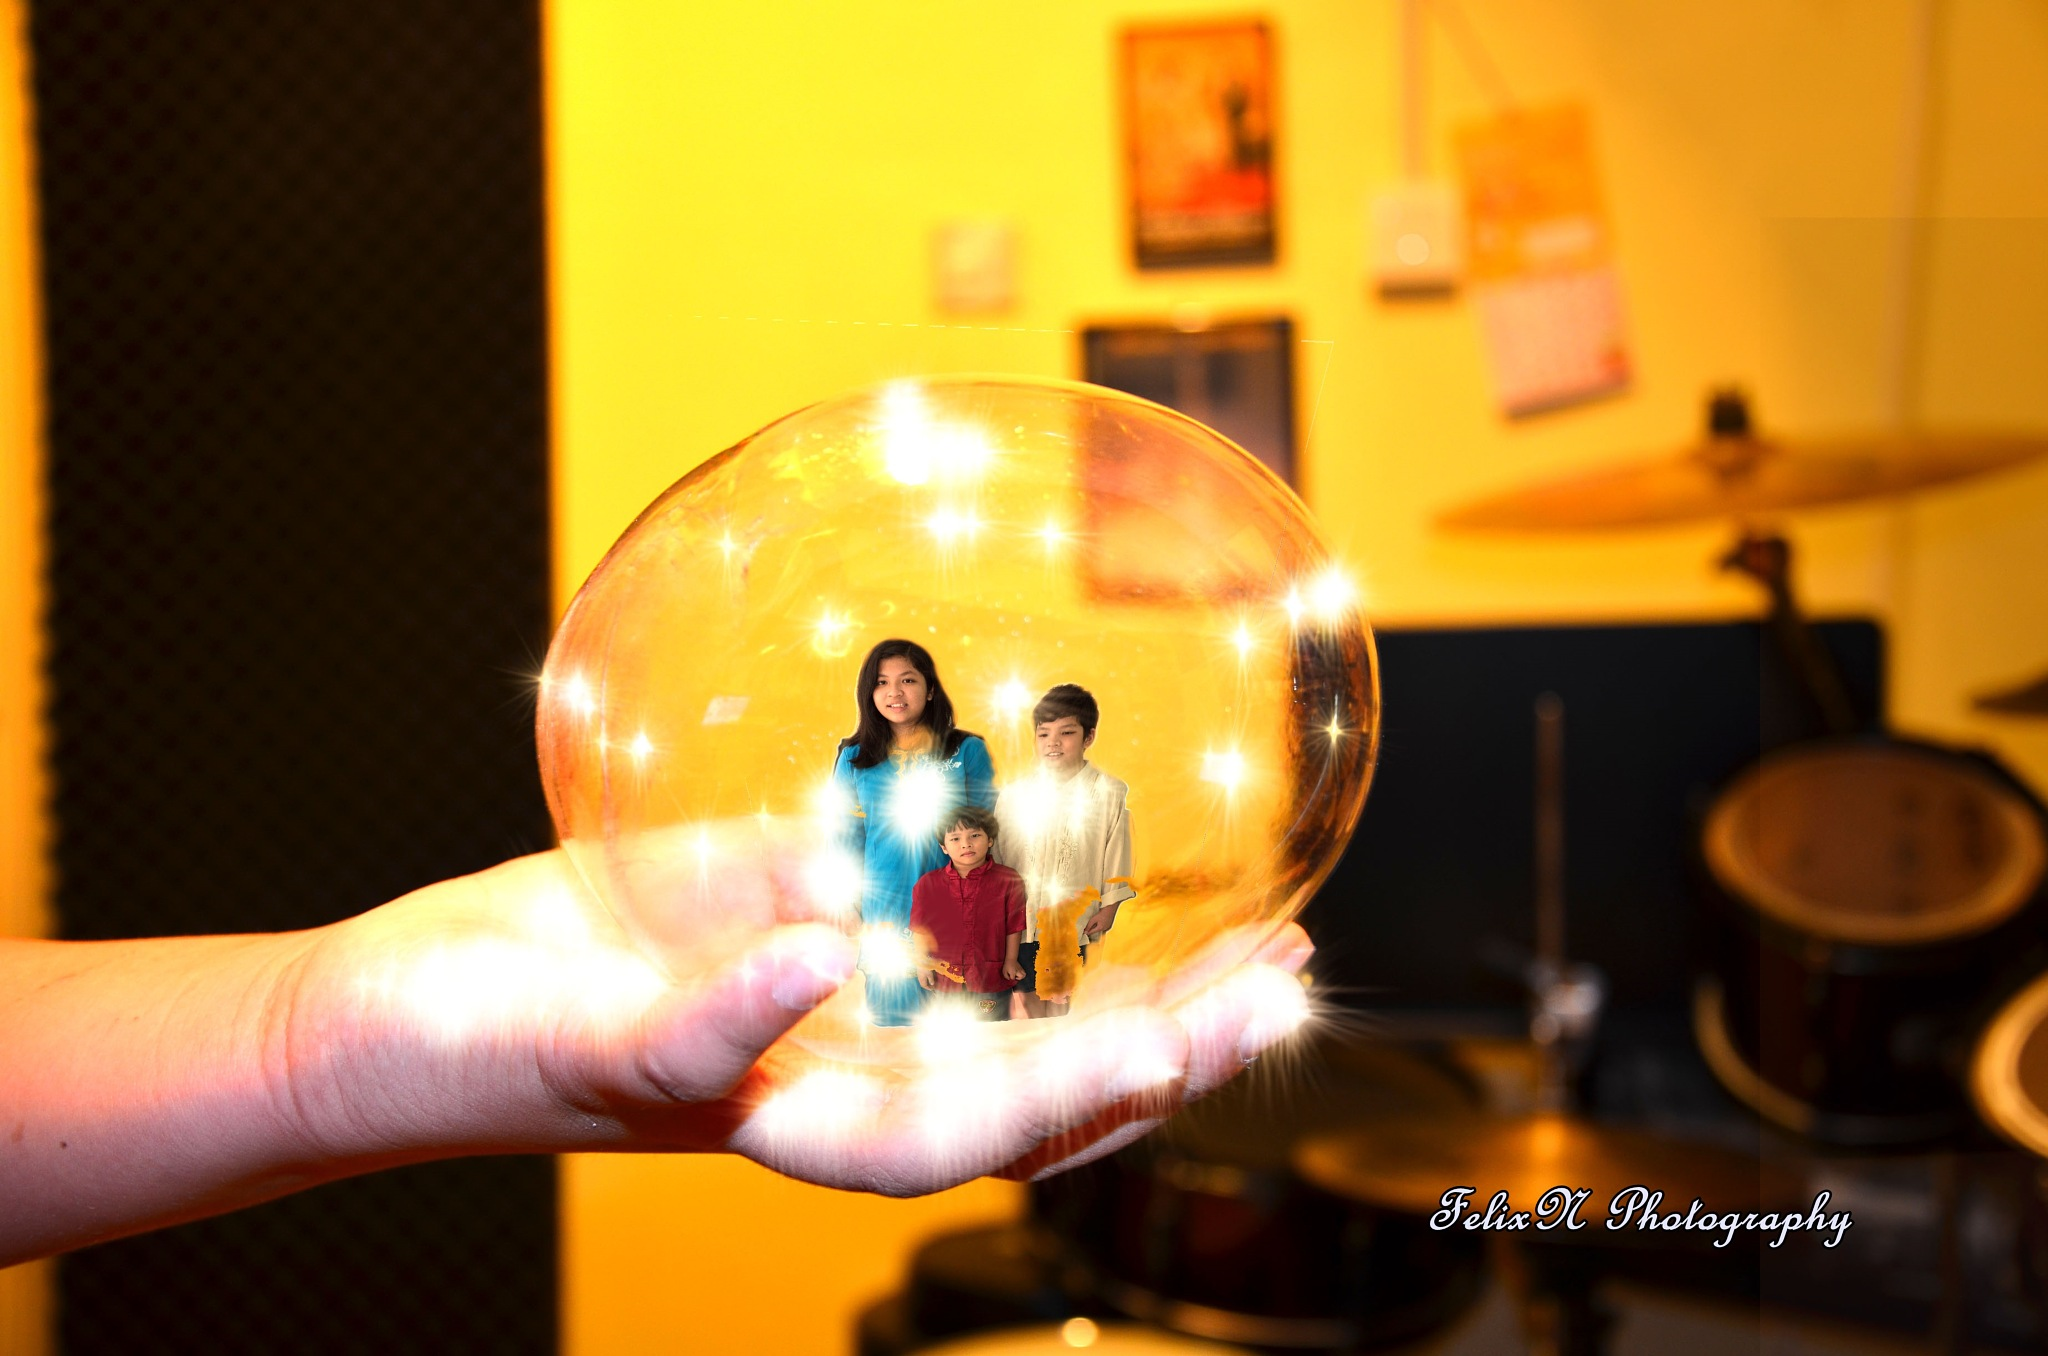 Used to place my kids in a bubble by FNA/LKN